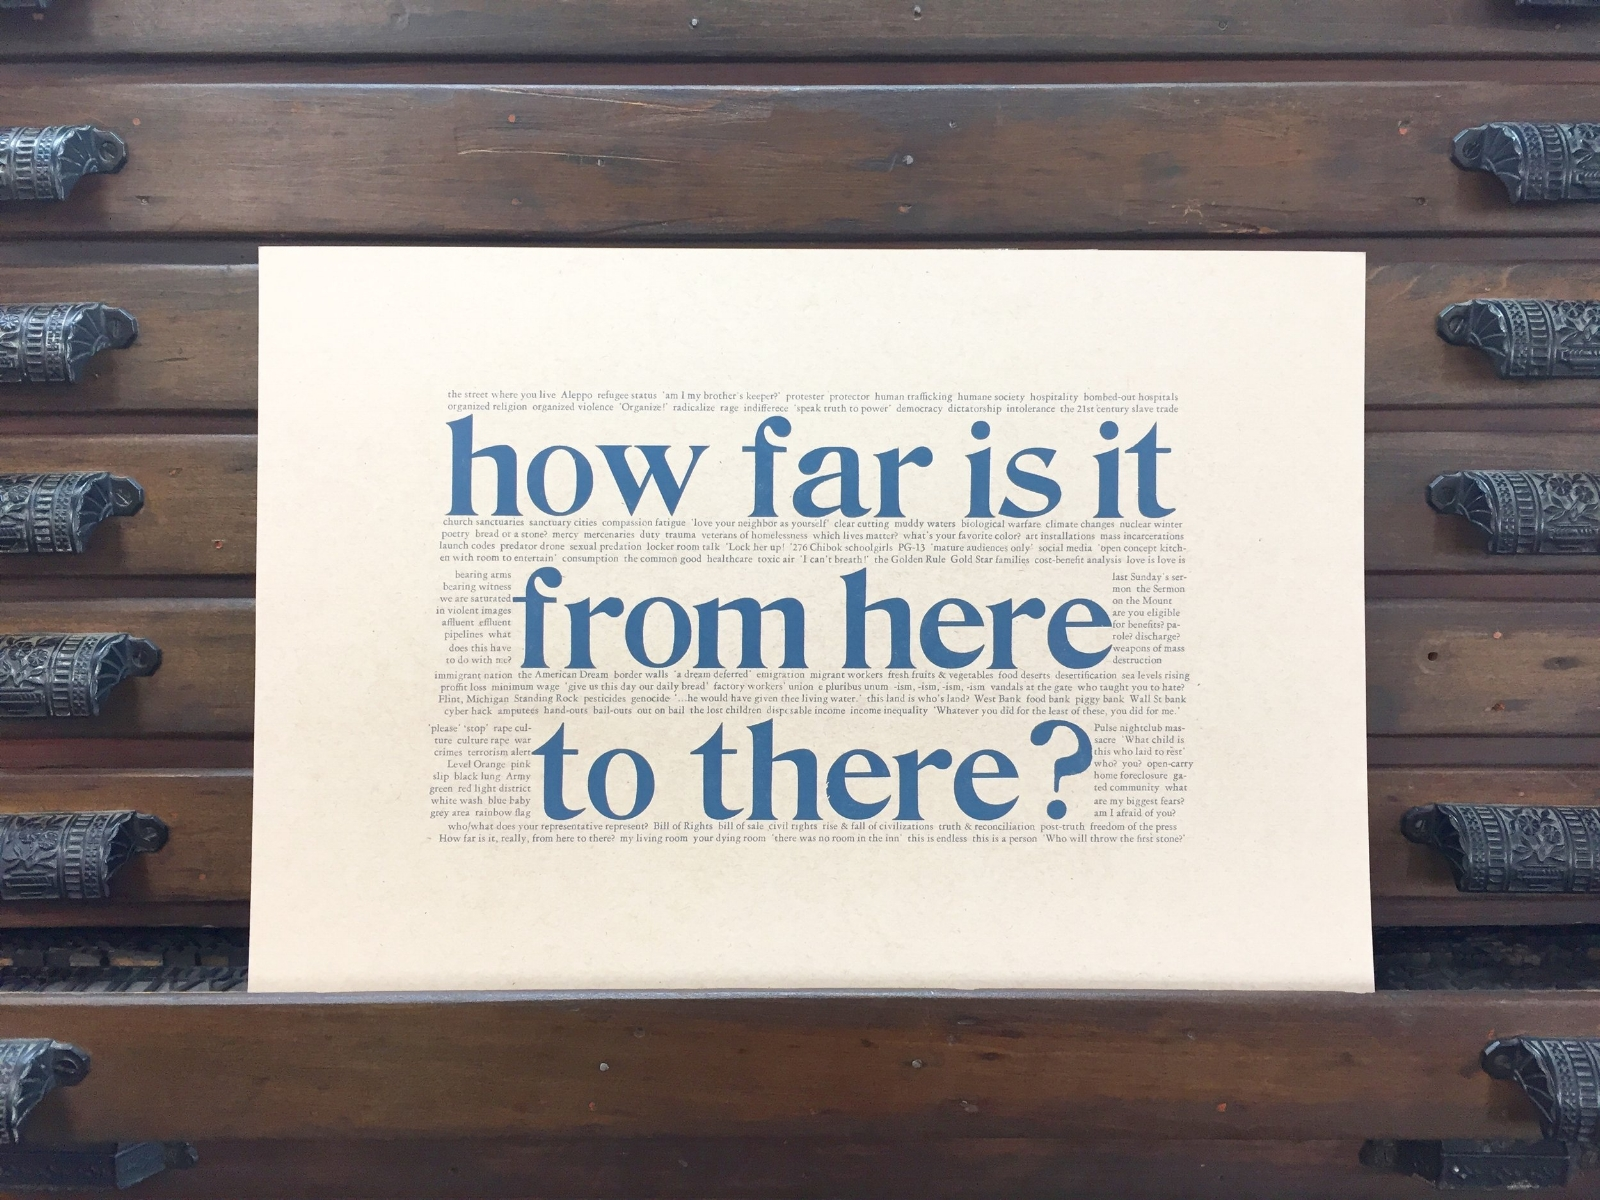 """ How far is it from here to there? ""   12x18 letterpress poster by Emily Hancock, $12 post-paid. For ordering, email us at   stbrigidpress@gmail.com   ."